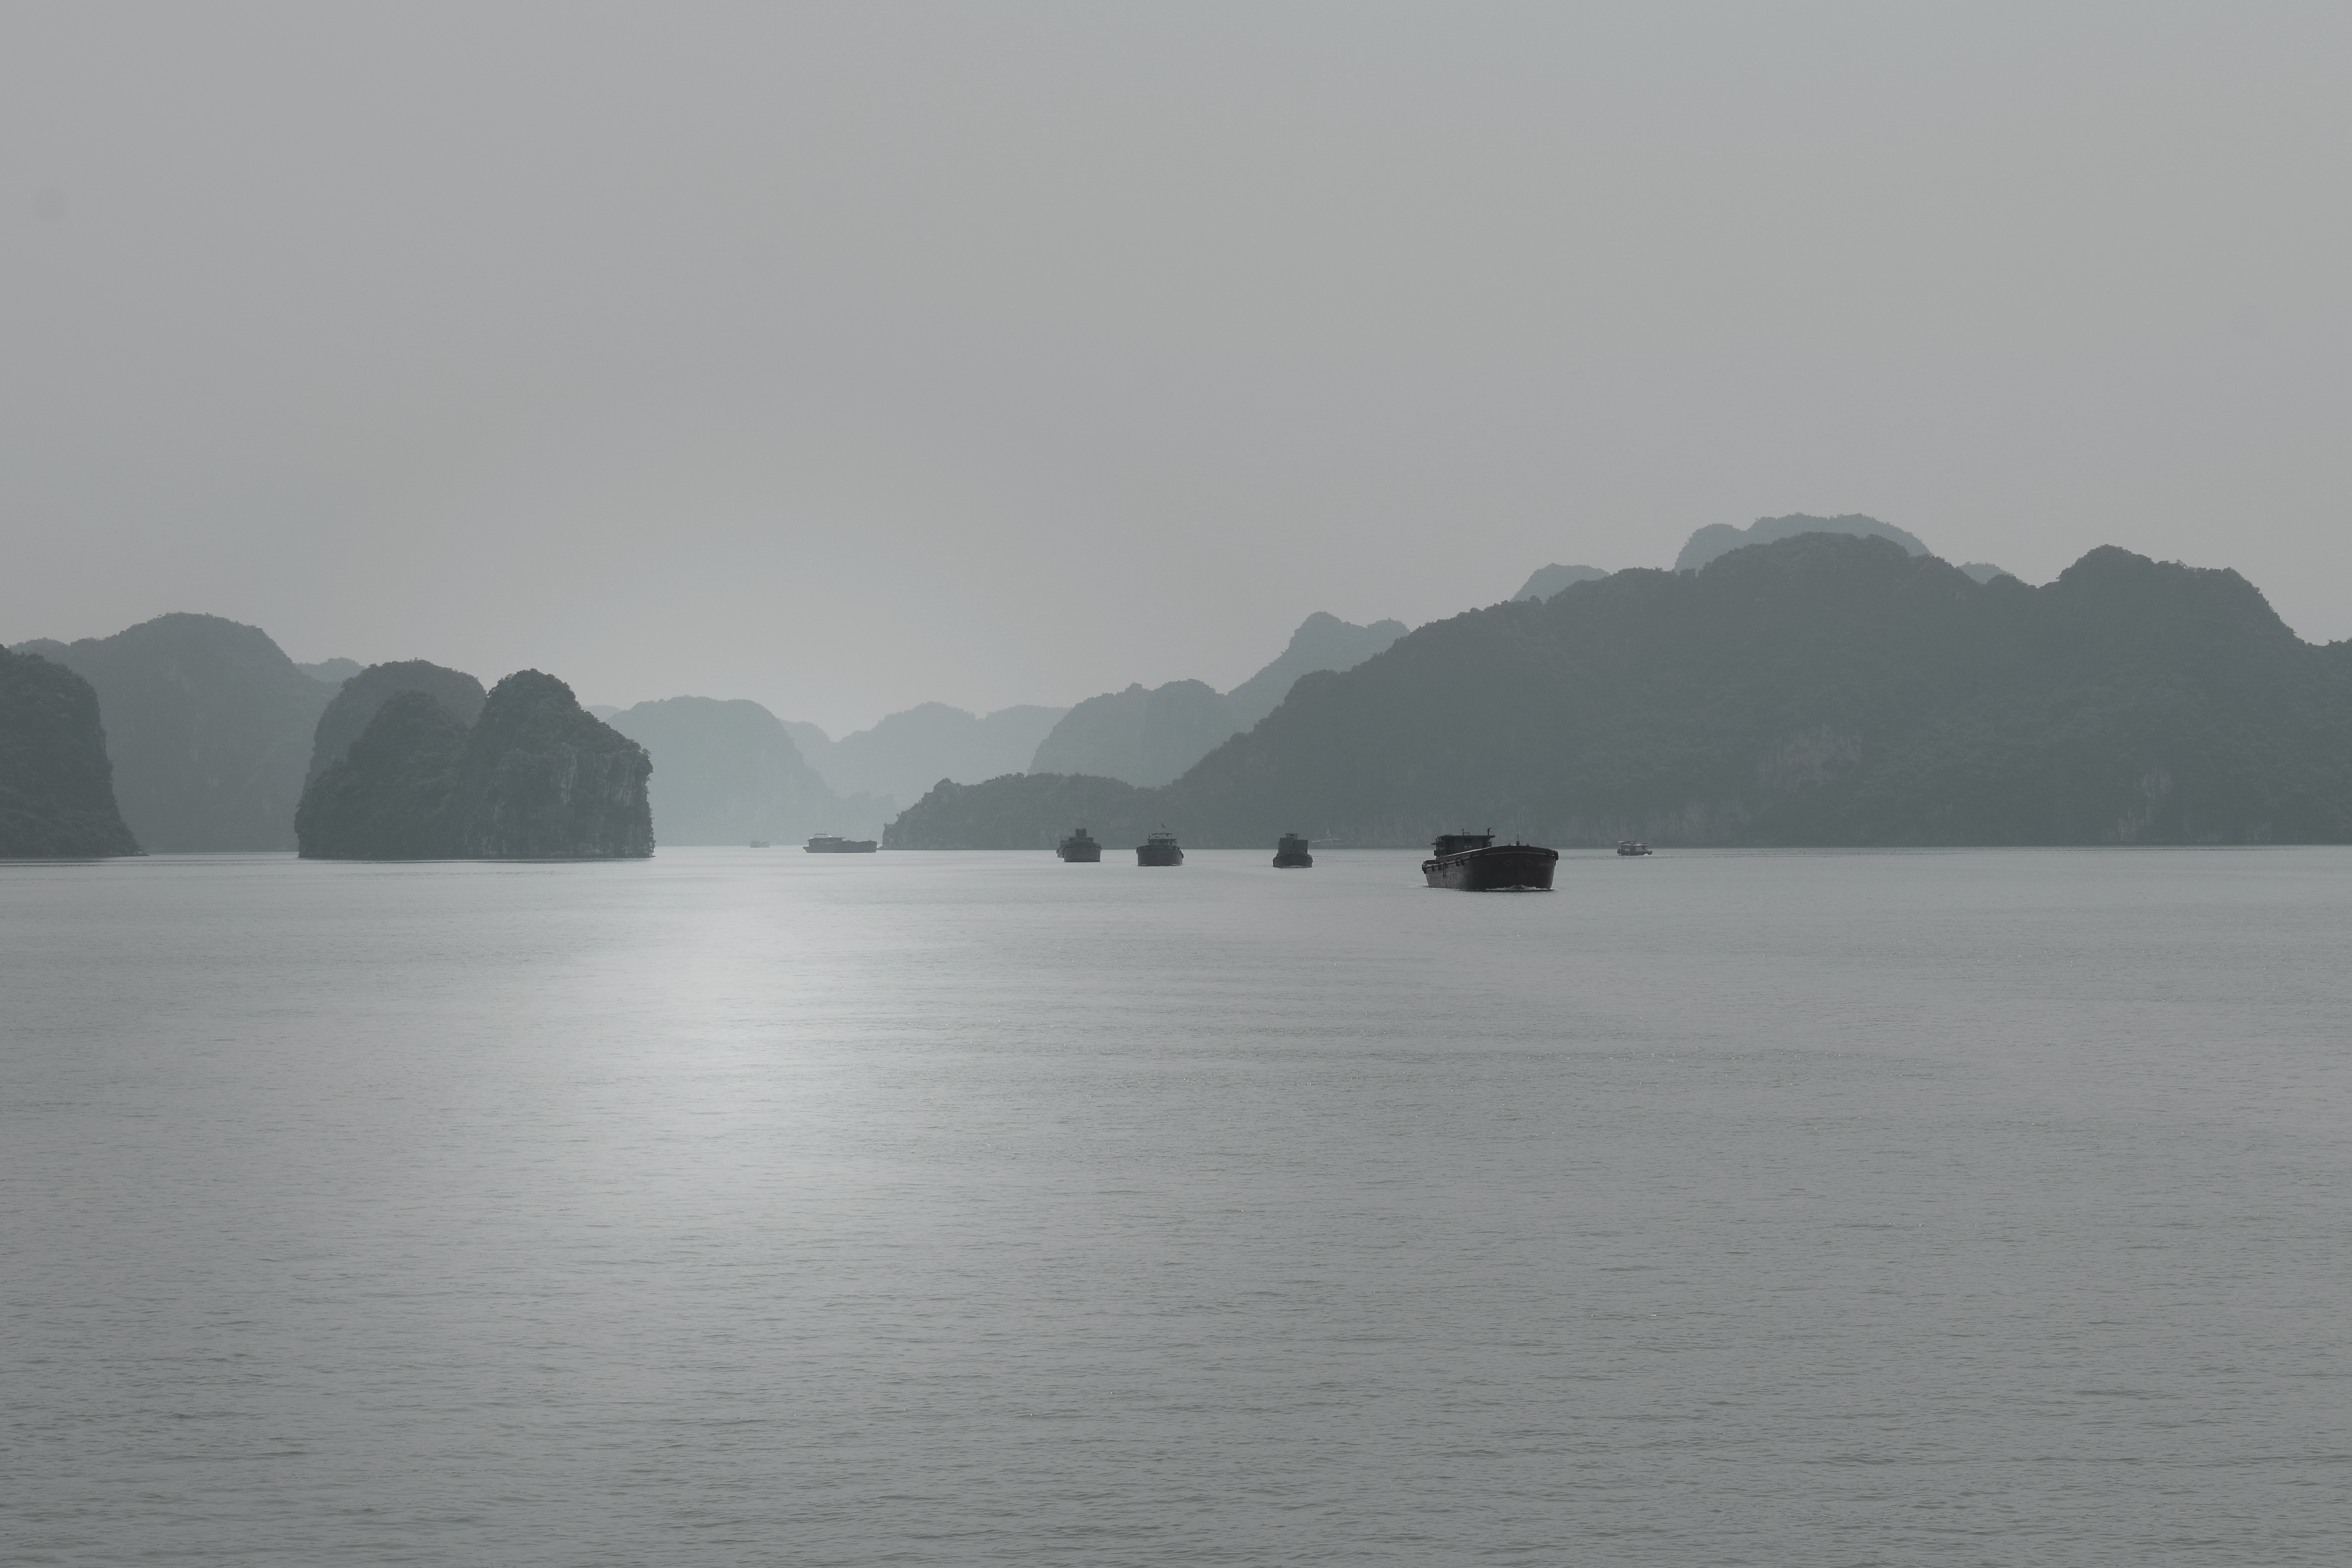 Mountains by the sea in Vietnam